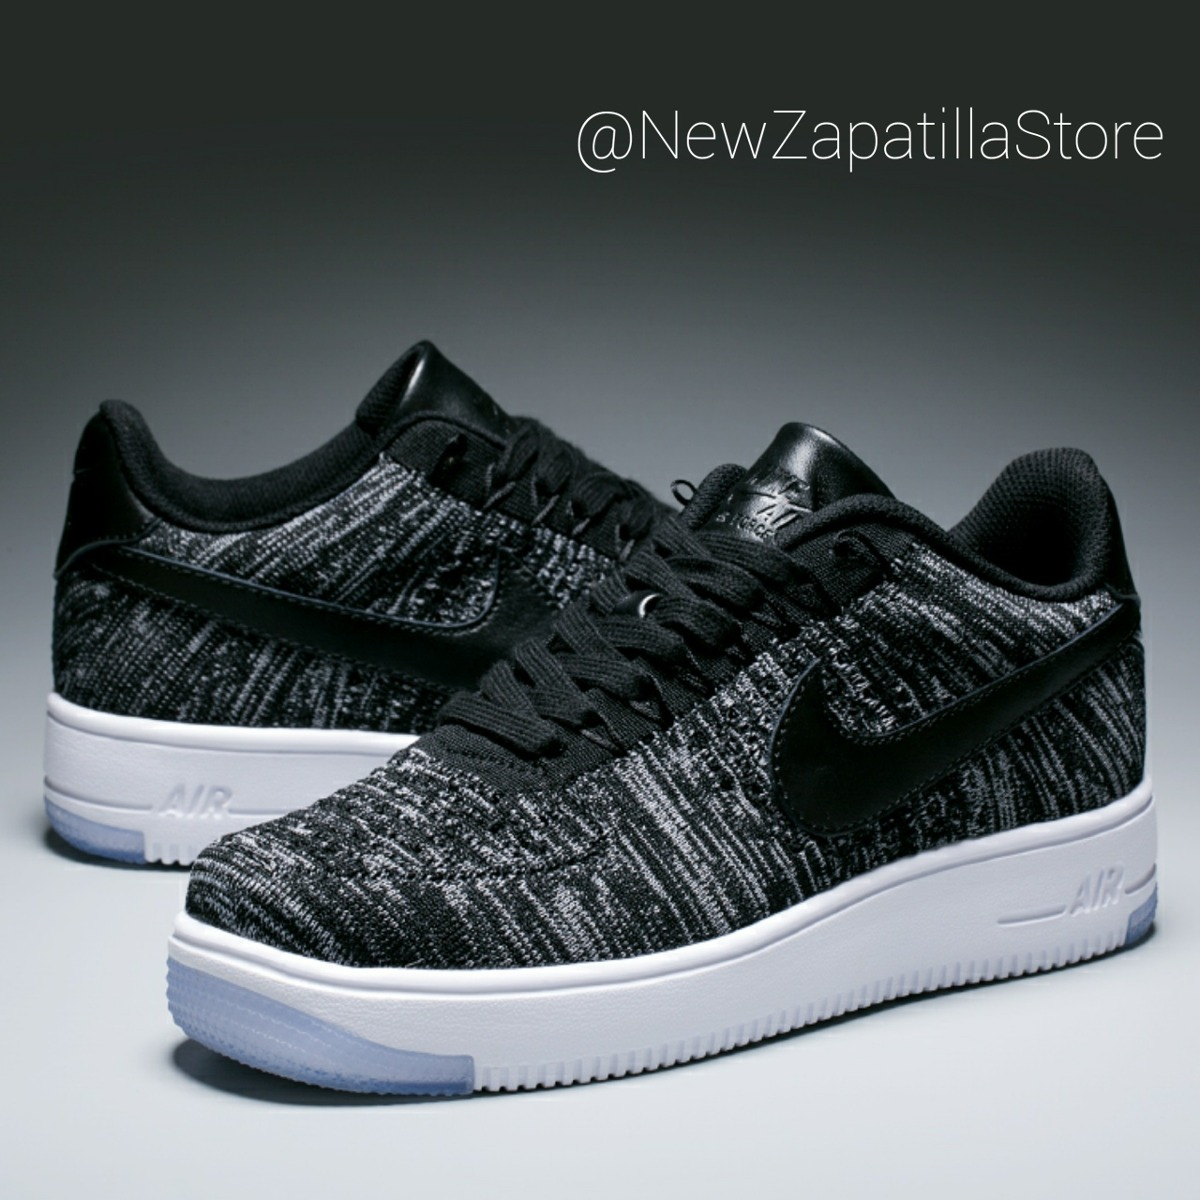 d29909ca1d960 ... czech zapatillas nike air force 1 ultra flyknit low tallas 36 45. cargando  zoom.